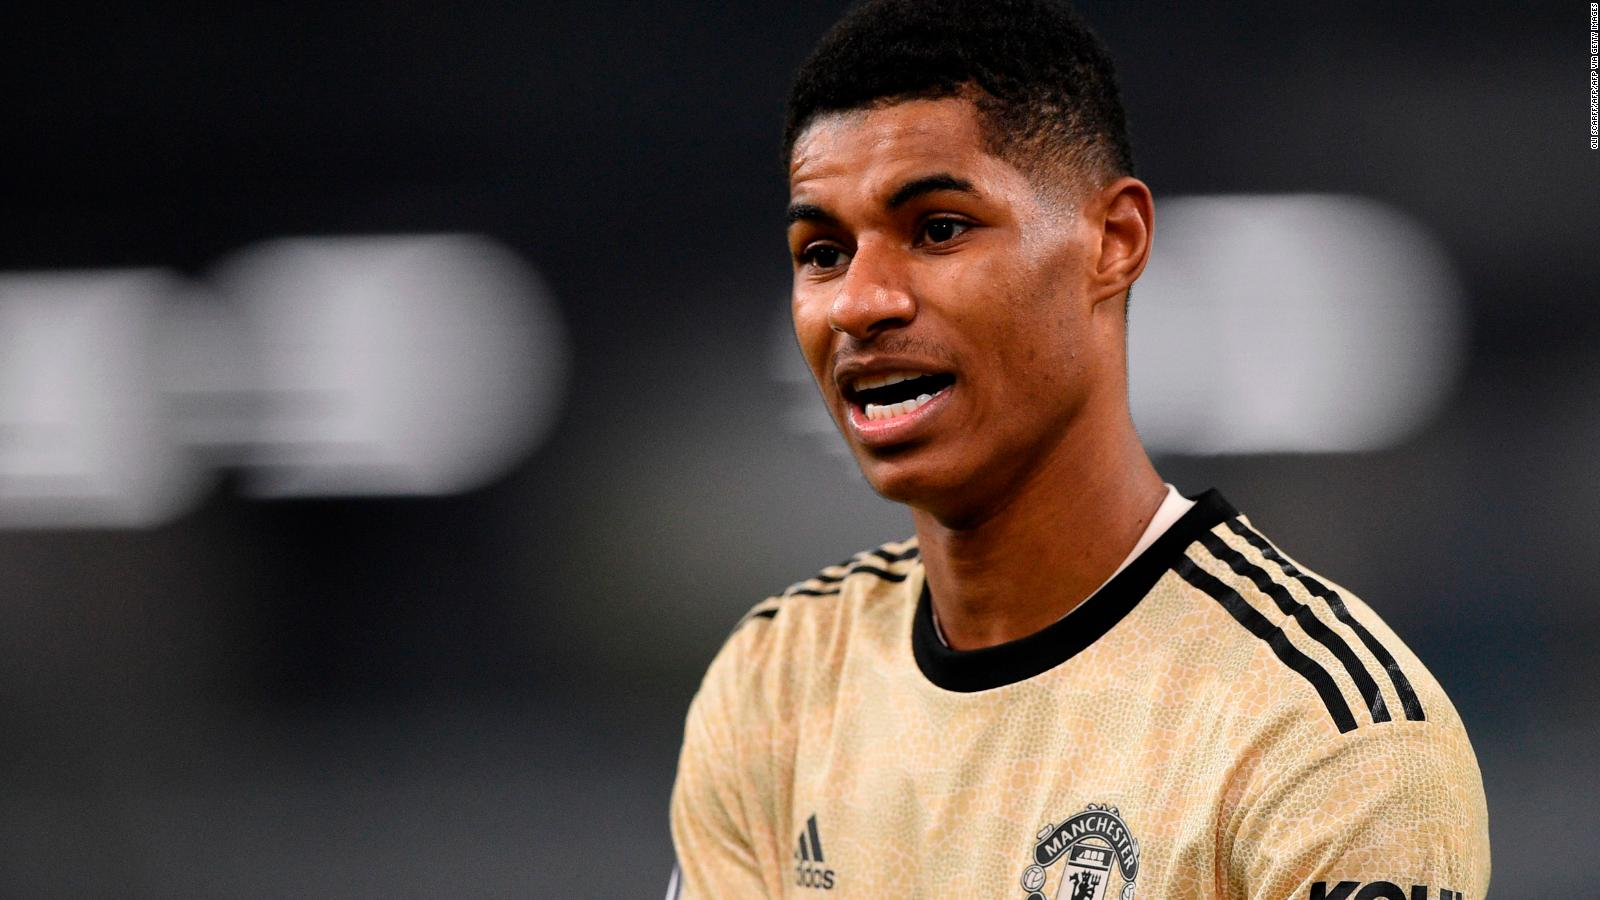 Marcus Rashford Calls On Uk Lawmakers To Find Humanity And Combat Child Hunger Cnn